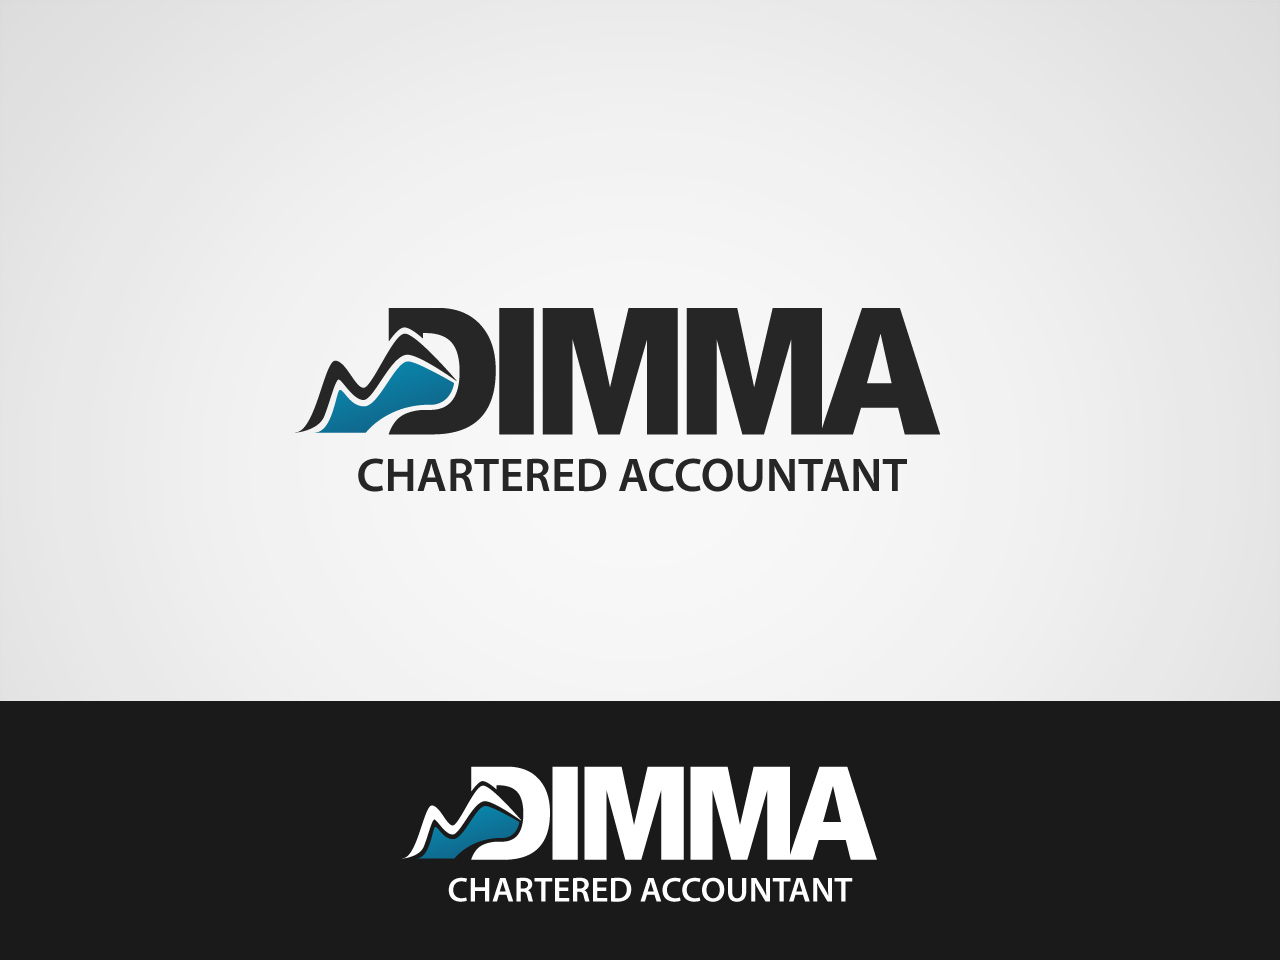 Logo Design by jpbituin - Entry No. 114 in the Logo Design Contest Creative Logo Design for Dimma Chartered Accountant.